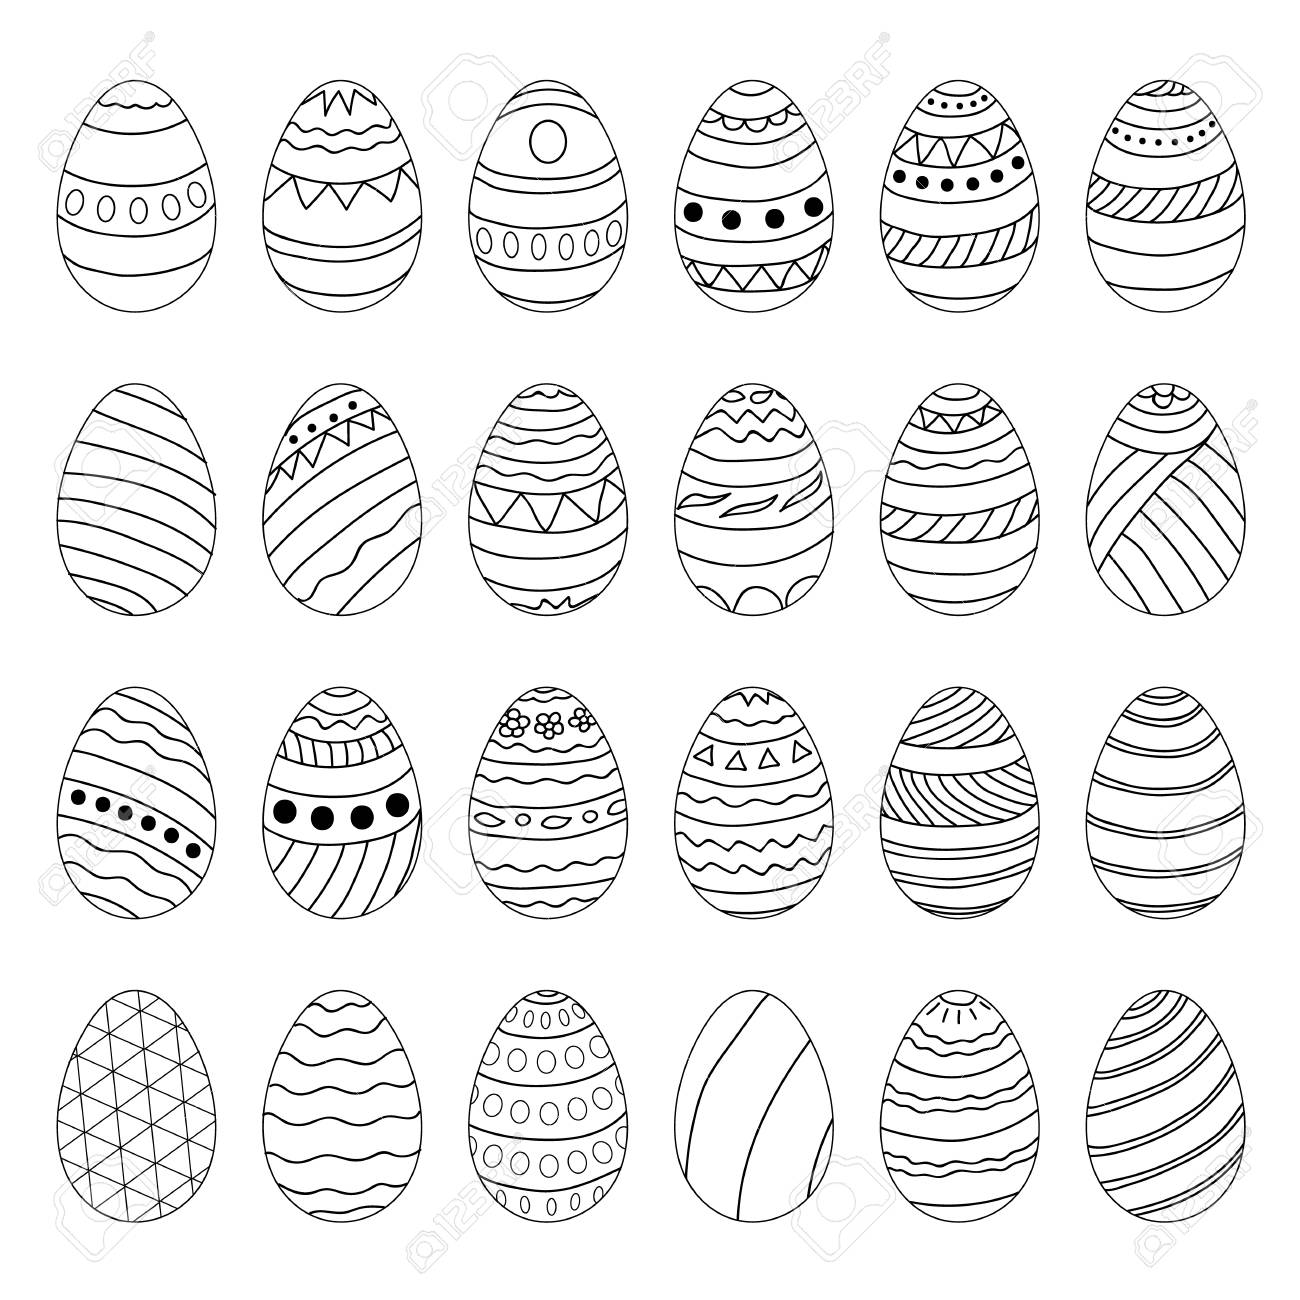 Set of Easter eggs with different patterns ornaments Elements